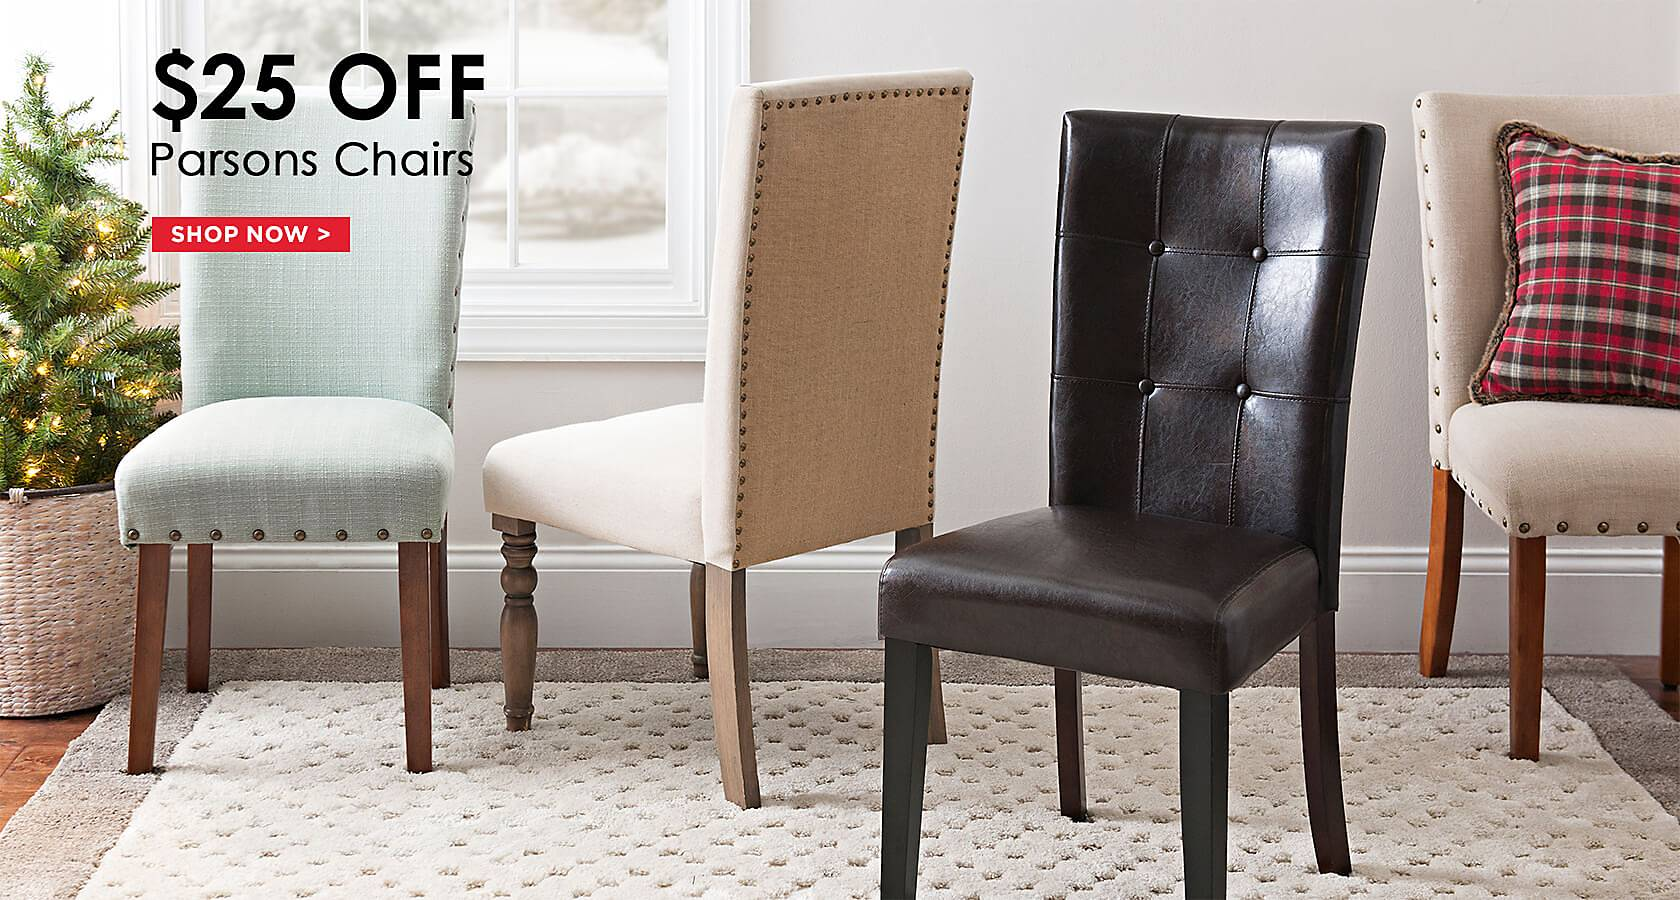 Furniture And Home Decor Part - 15: $25 Off Parsons Chairs - Shop Now